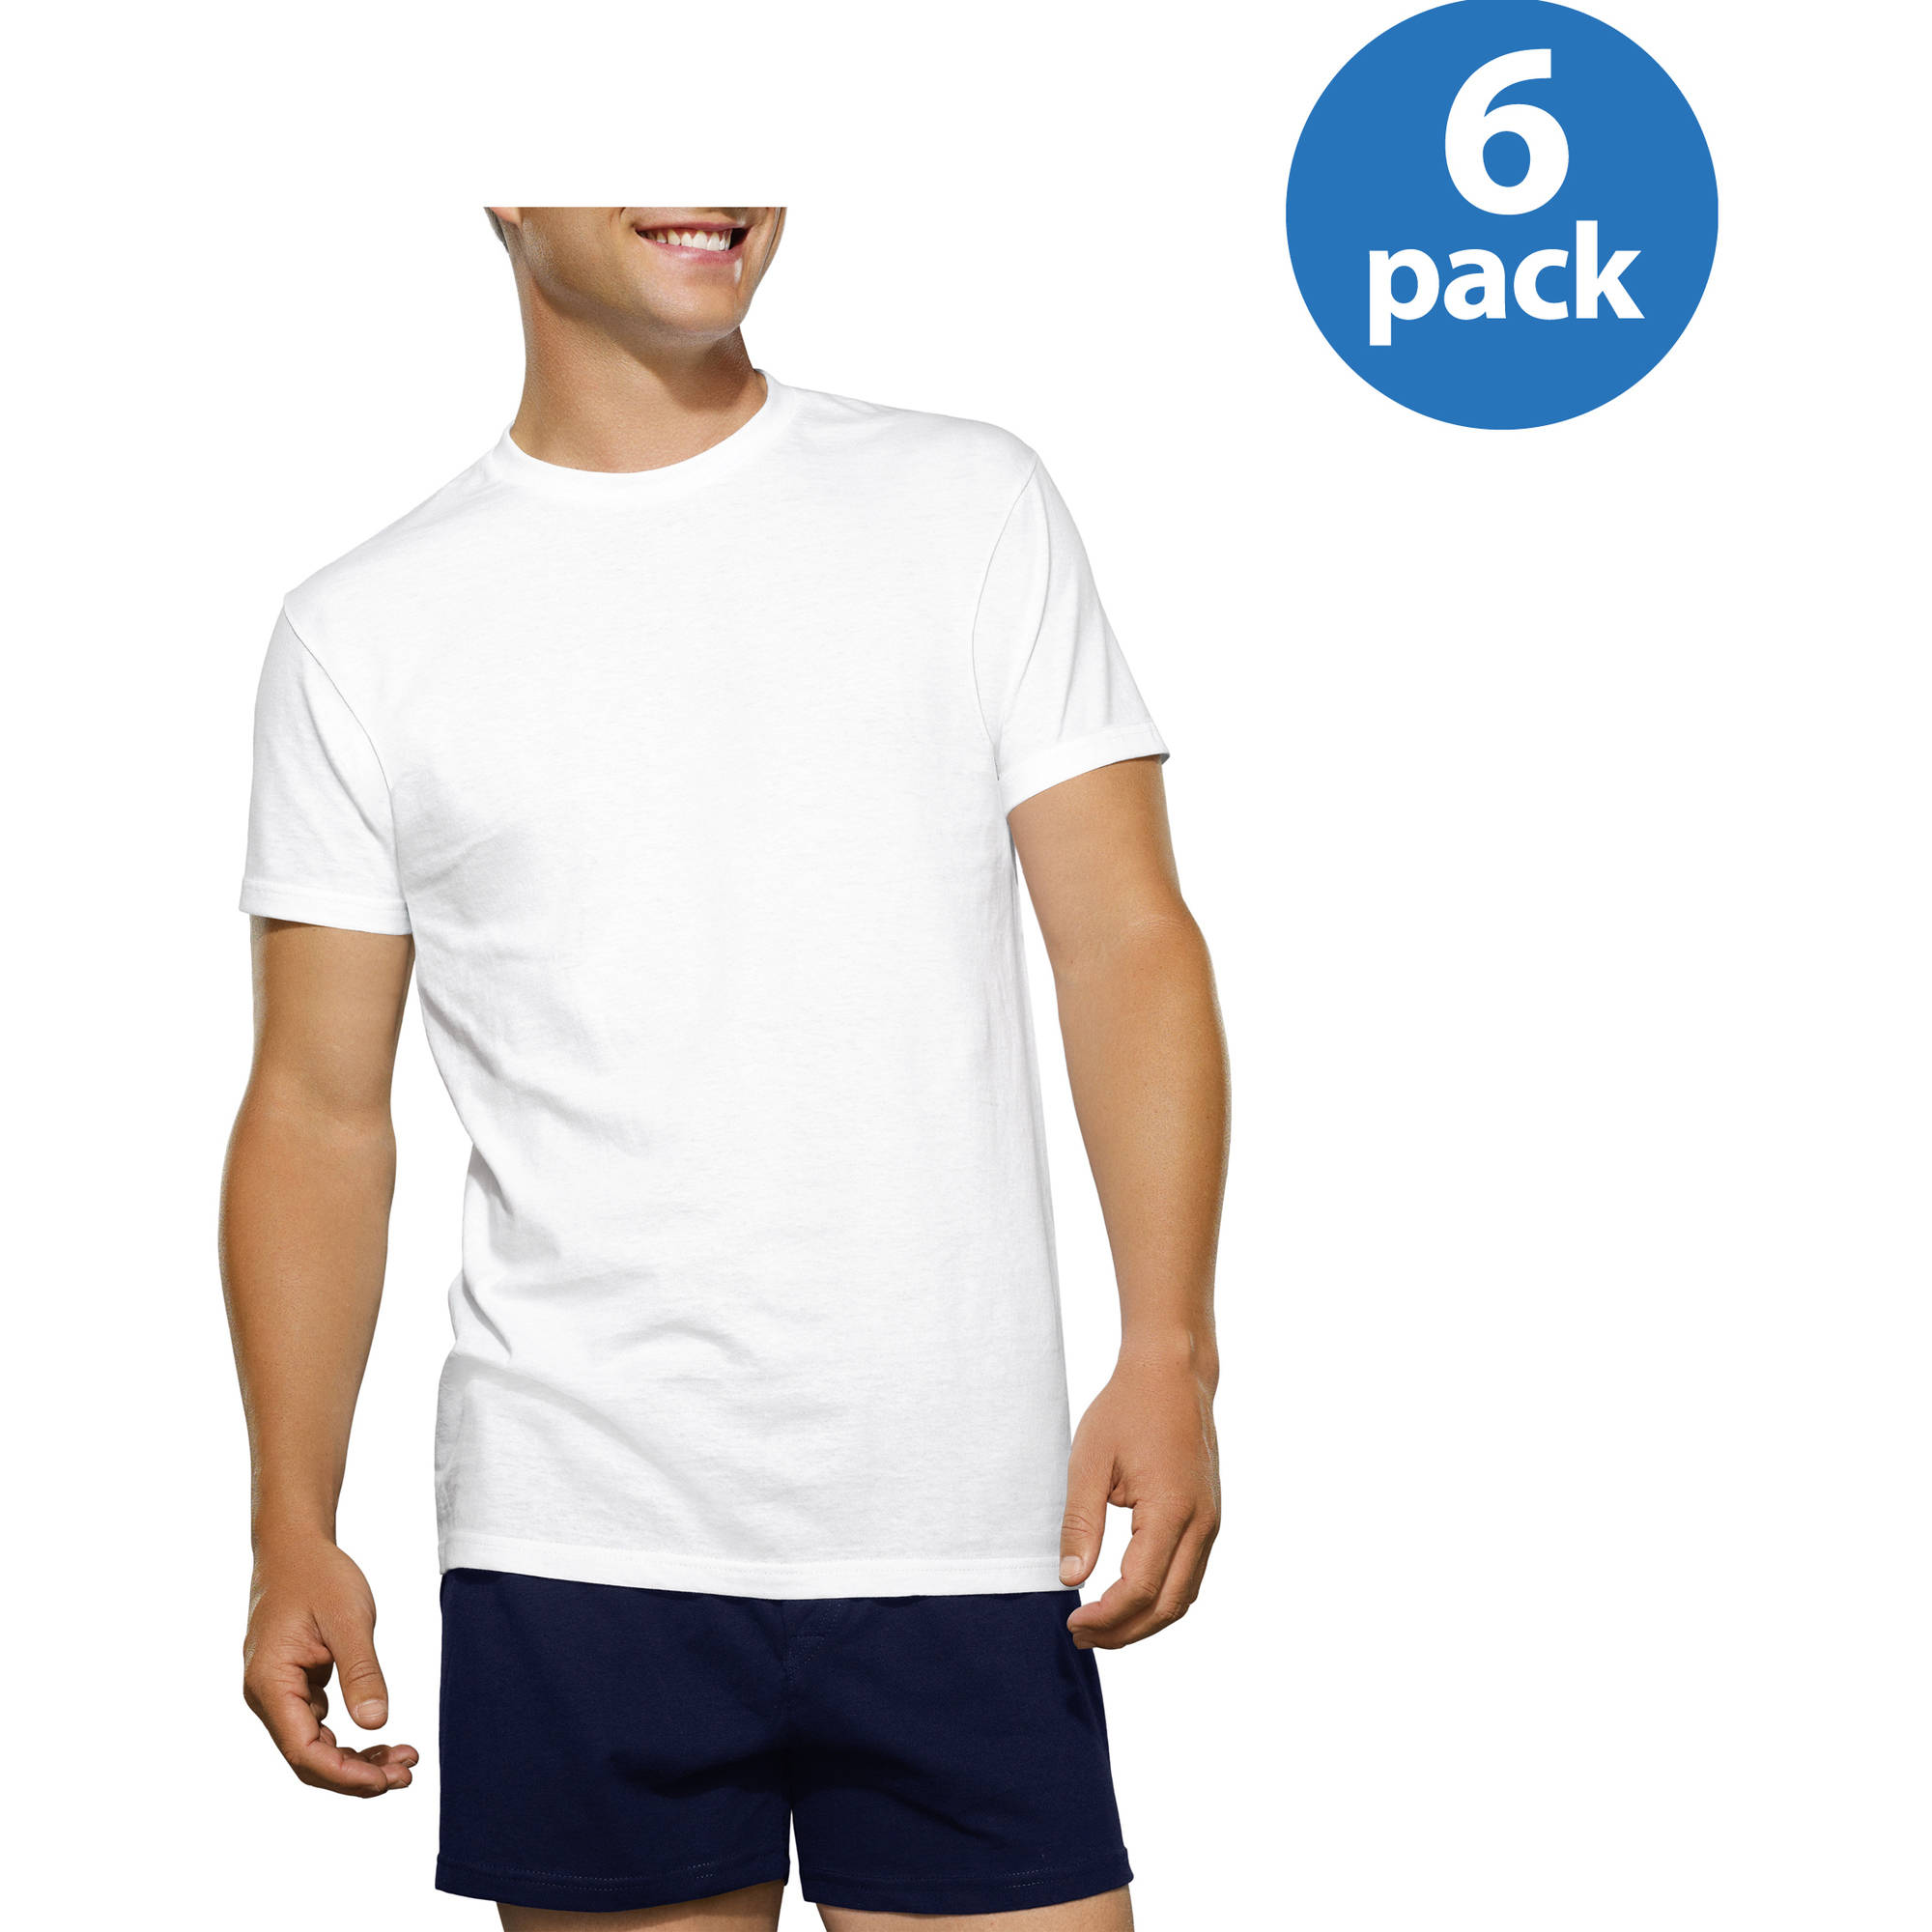 New Reinvented Tee! Fruit of the Loom Men's White Crews, 6-Pack